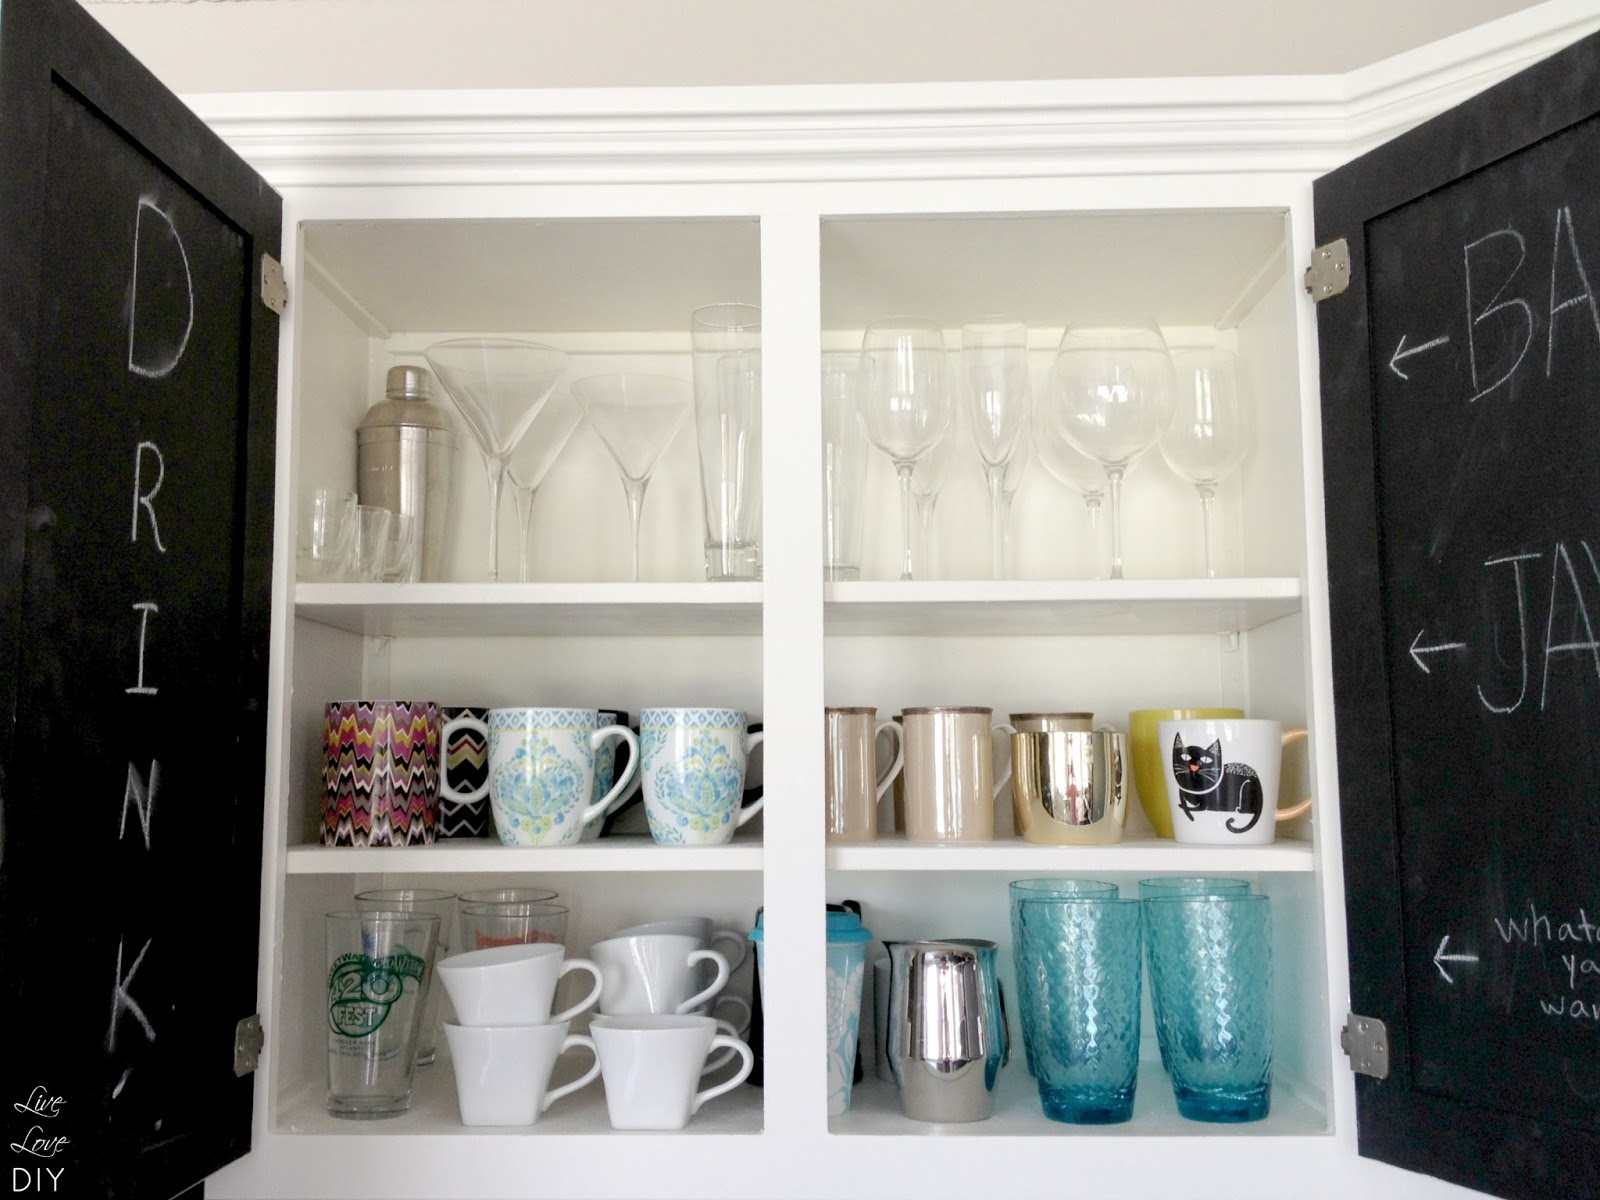 & LiveLoveDIY: How To Paint Kitchen Cabinets in 10 Easy Steps